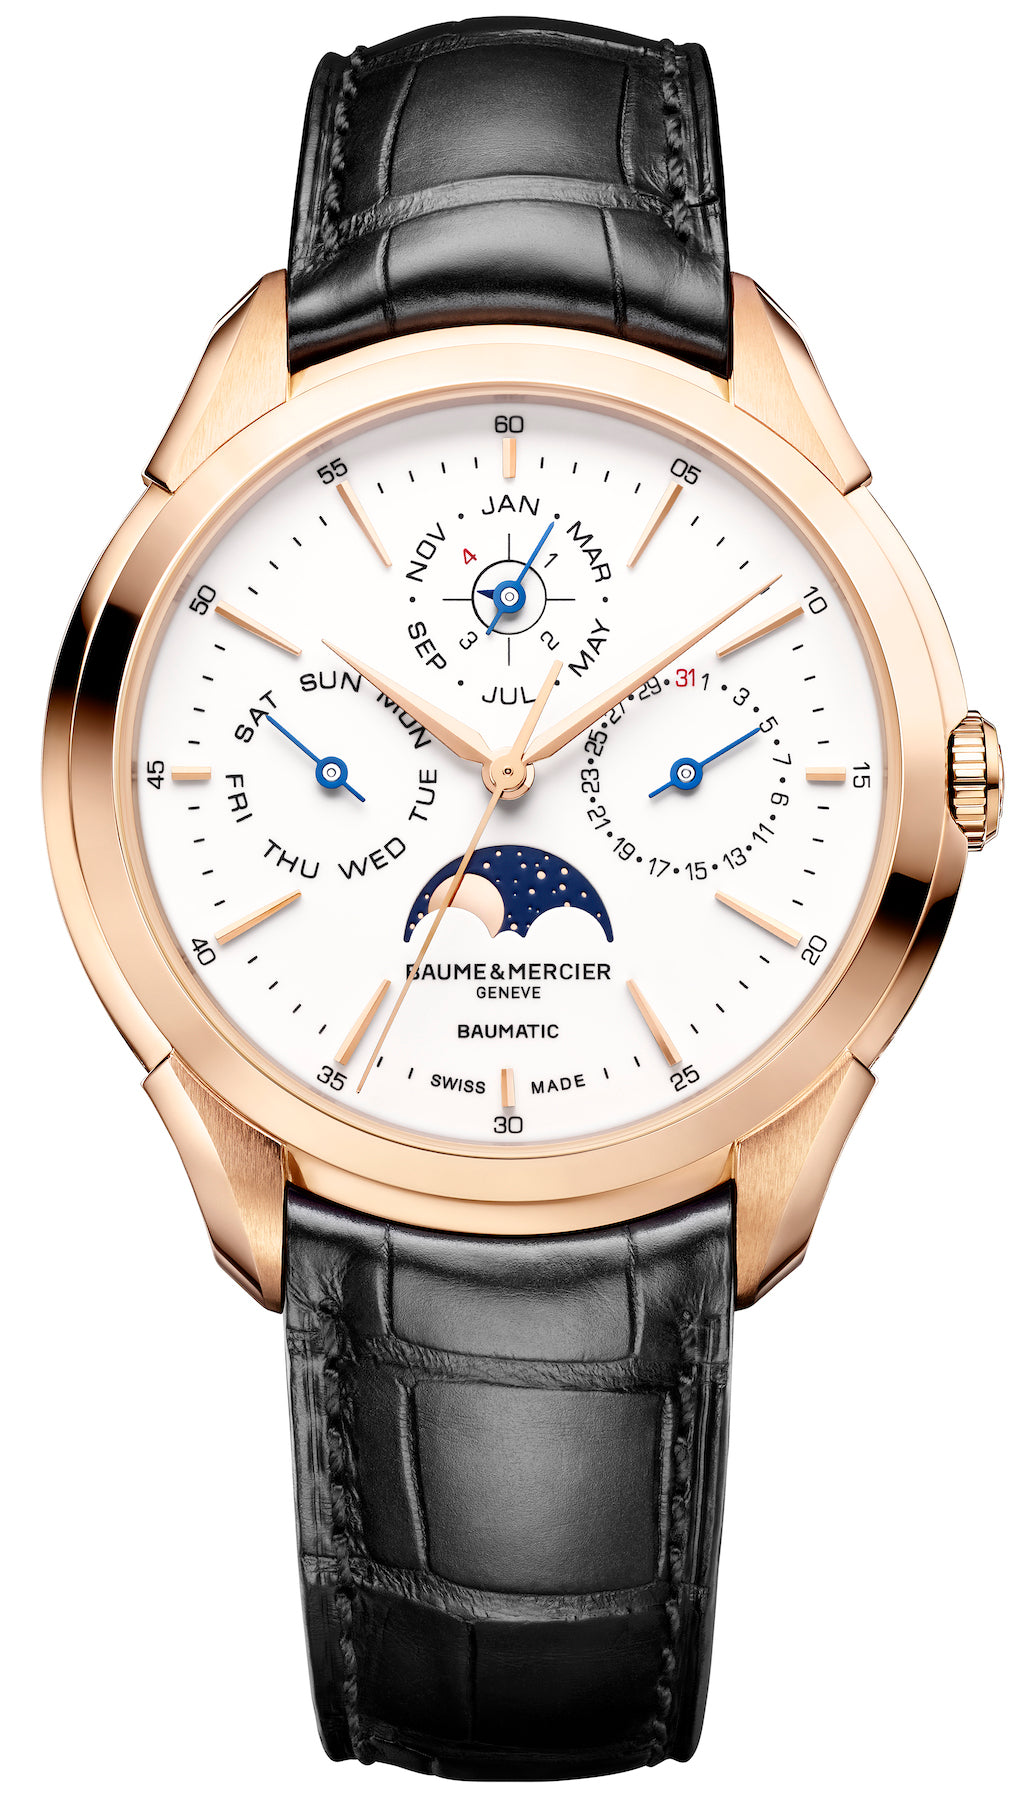 Baume et Mercier Watch Clifton Baumatic Perpetual Calendar Pre-Order